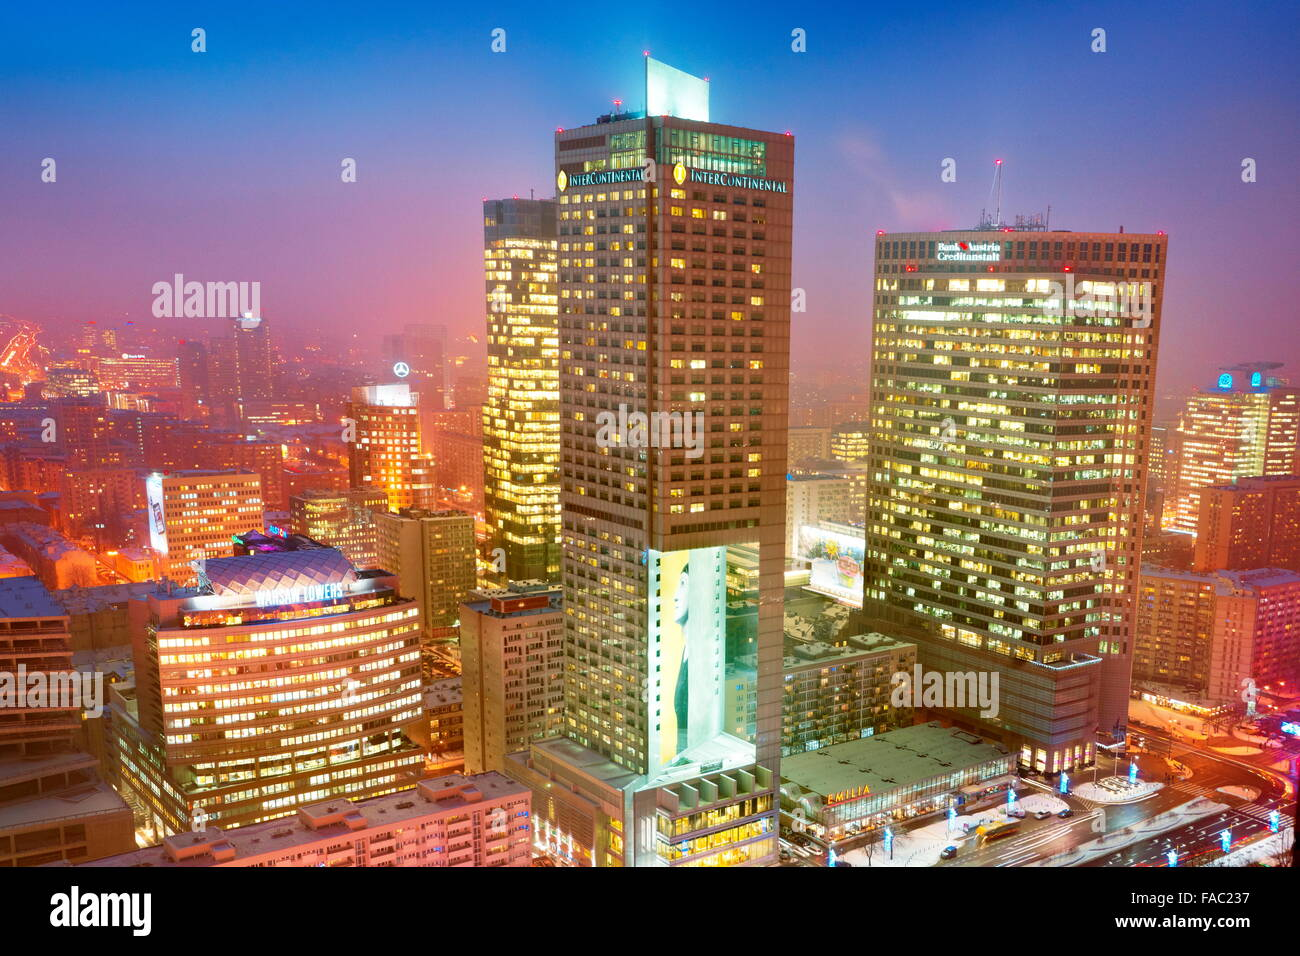 Warsaw modern district skyline, Poland - Stock Image